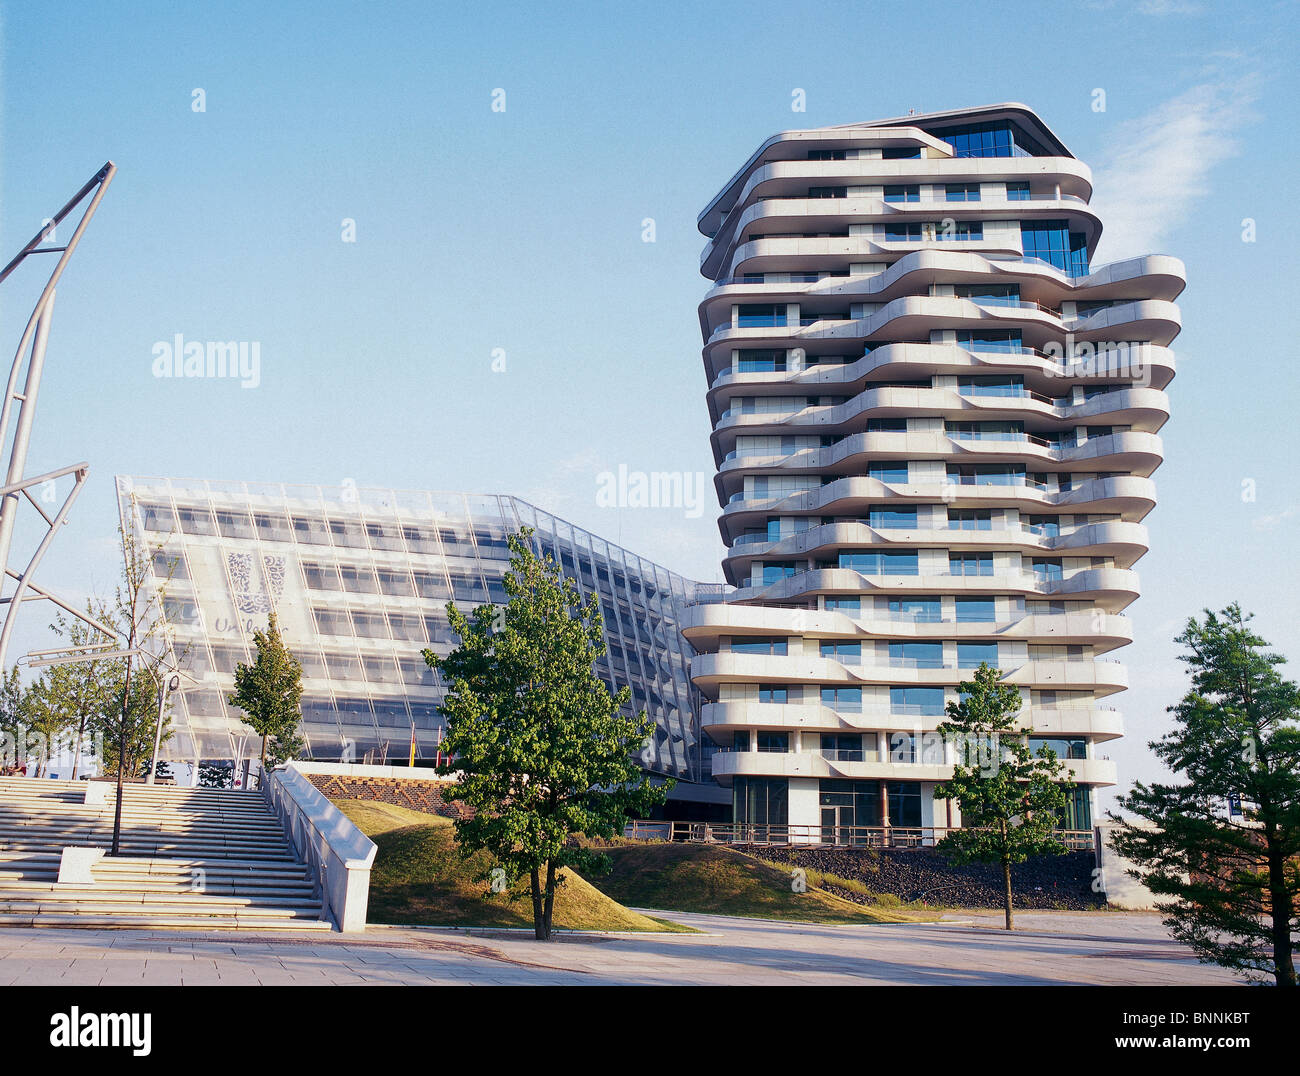 the new marco polo tower in hamburg build by behnisch architects stock photo royalty free image. Black Bedroom Furniture Sets. Home Design Ideas